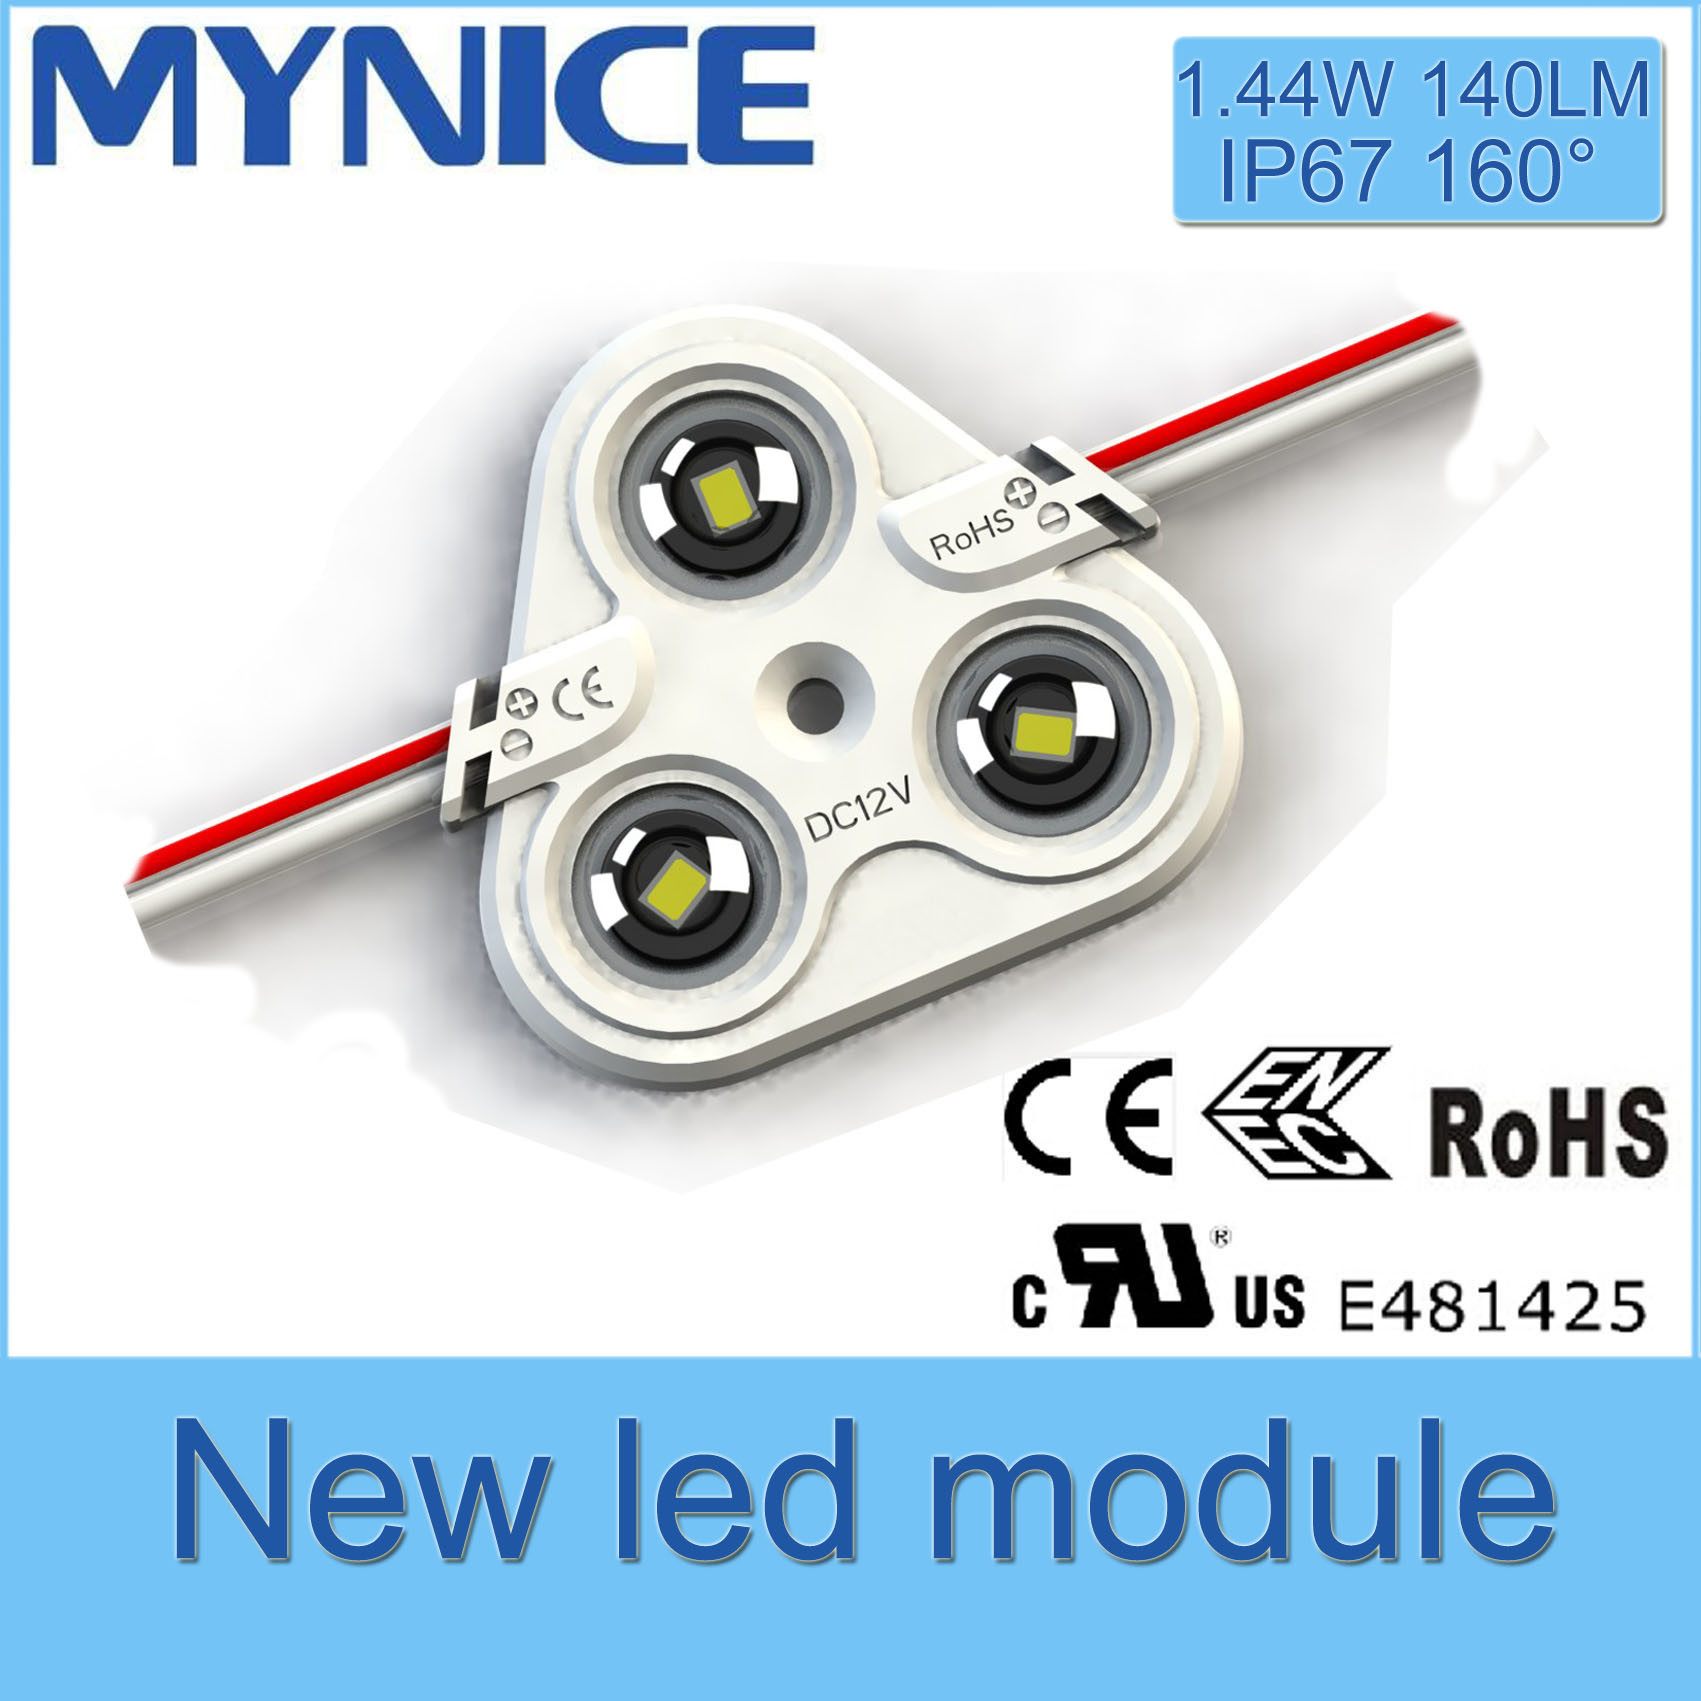 UL/Ce/RoHS 1.44W LED Injection Module with Lens High Brightness 5 Years Warranty Waterproof